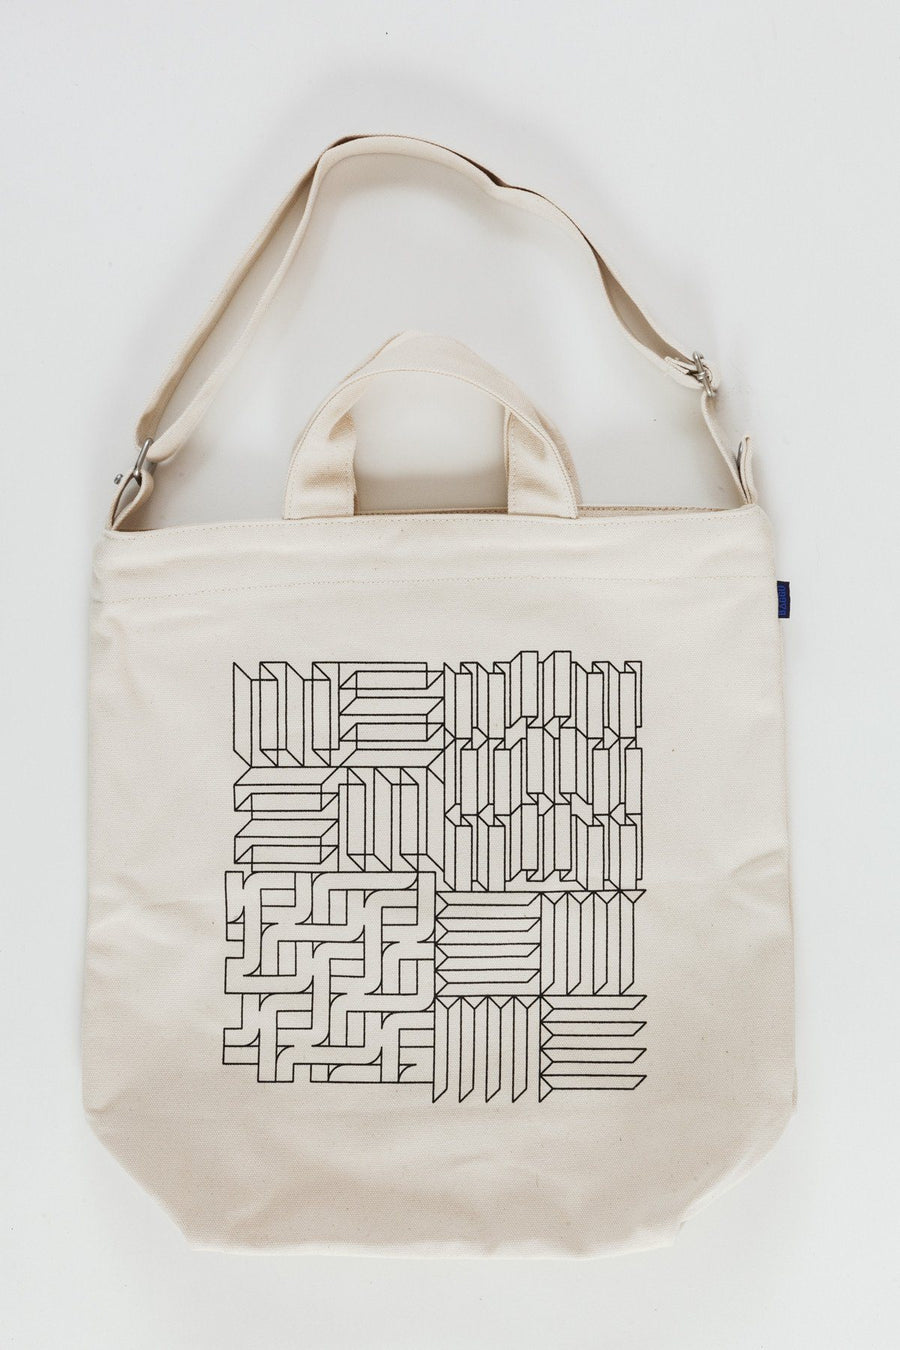 Jim Isermann @ Placewares, Bag, Duck Canvas Tote | Jim Isermann @ Placewares, - Placewares